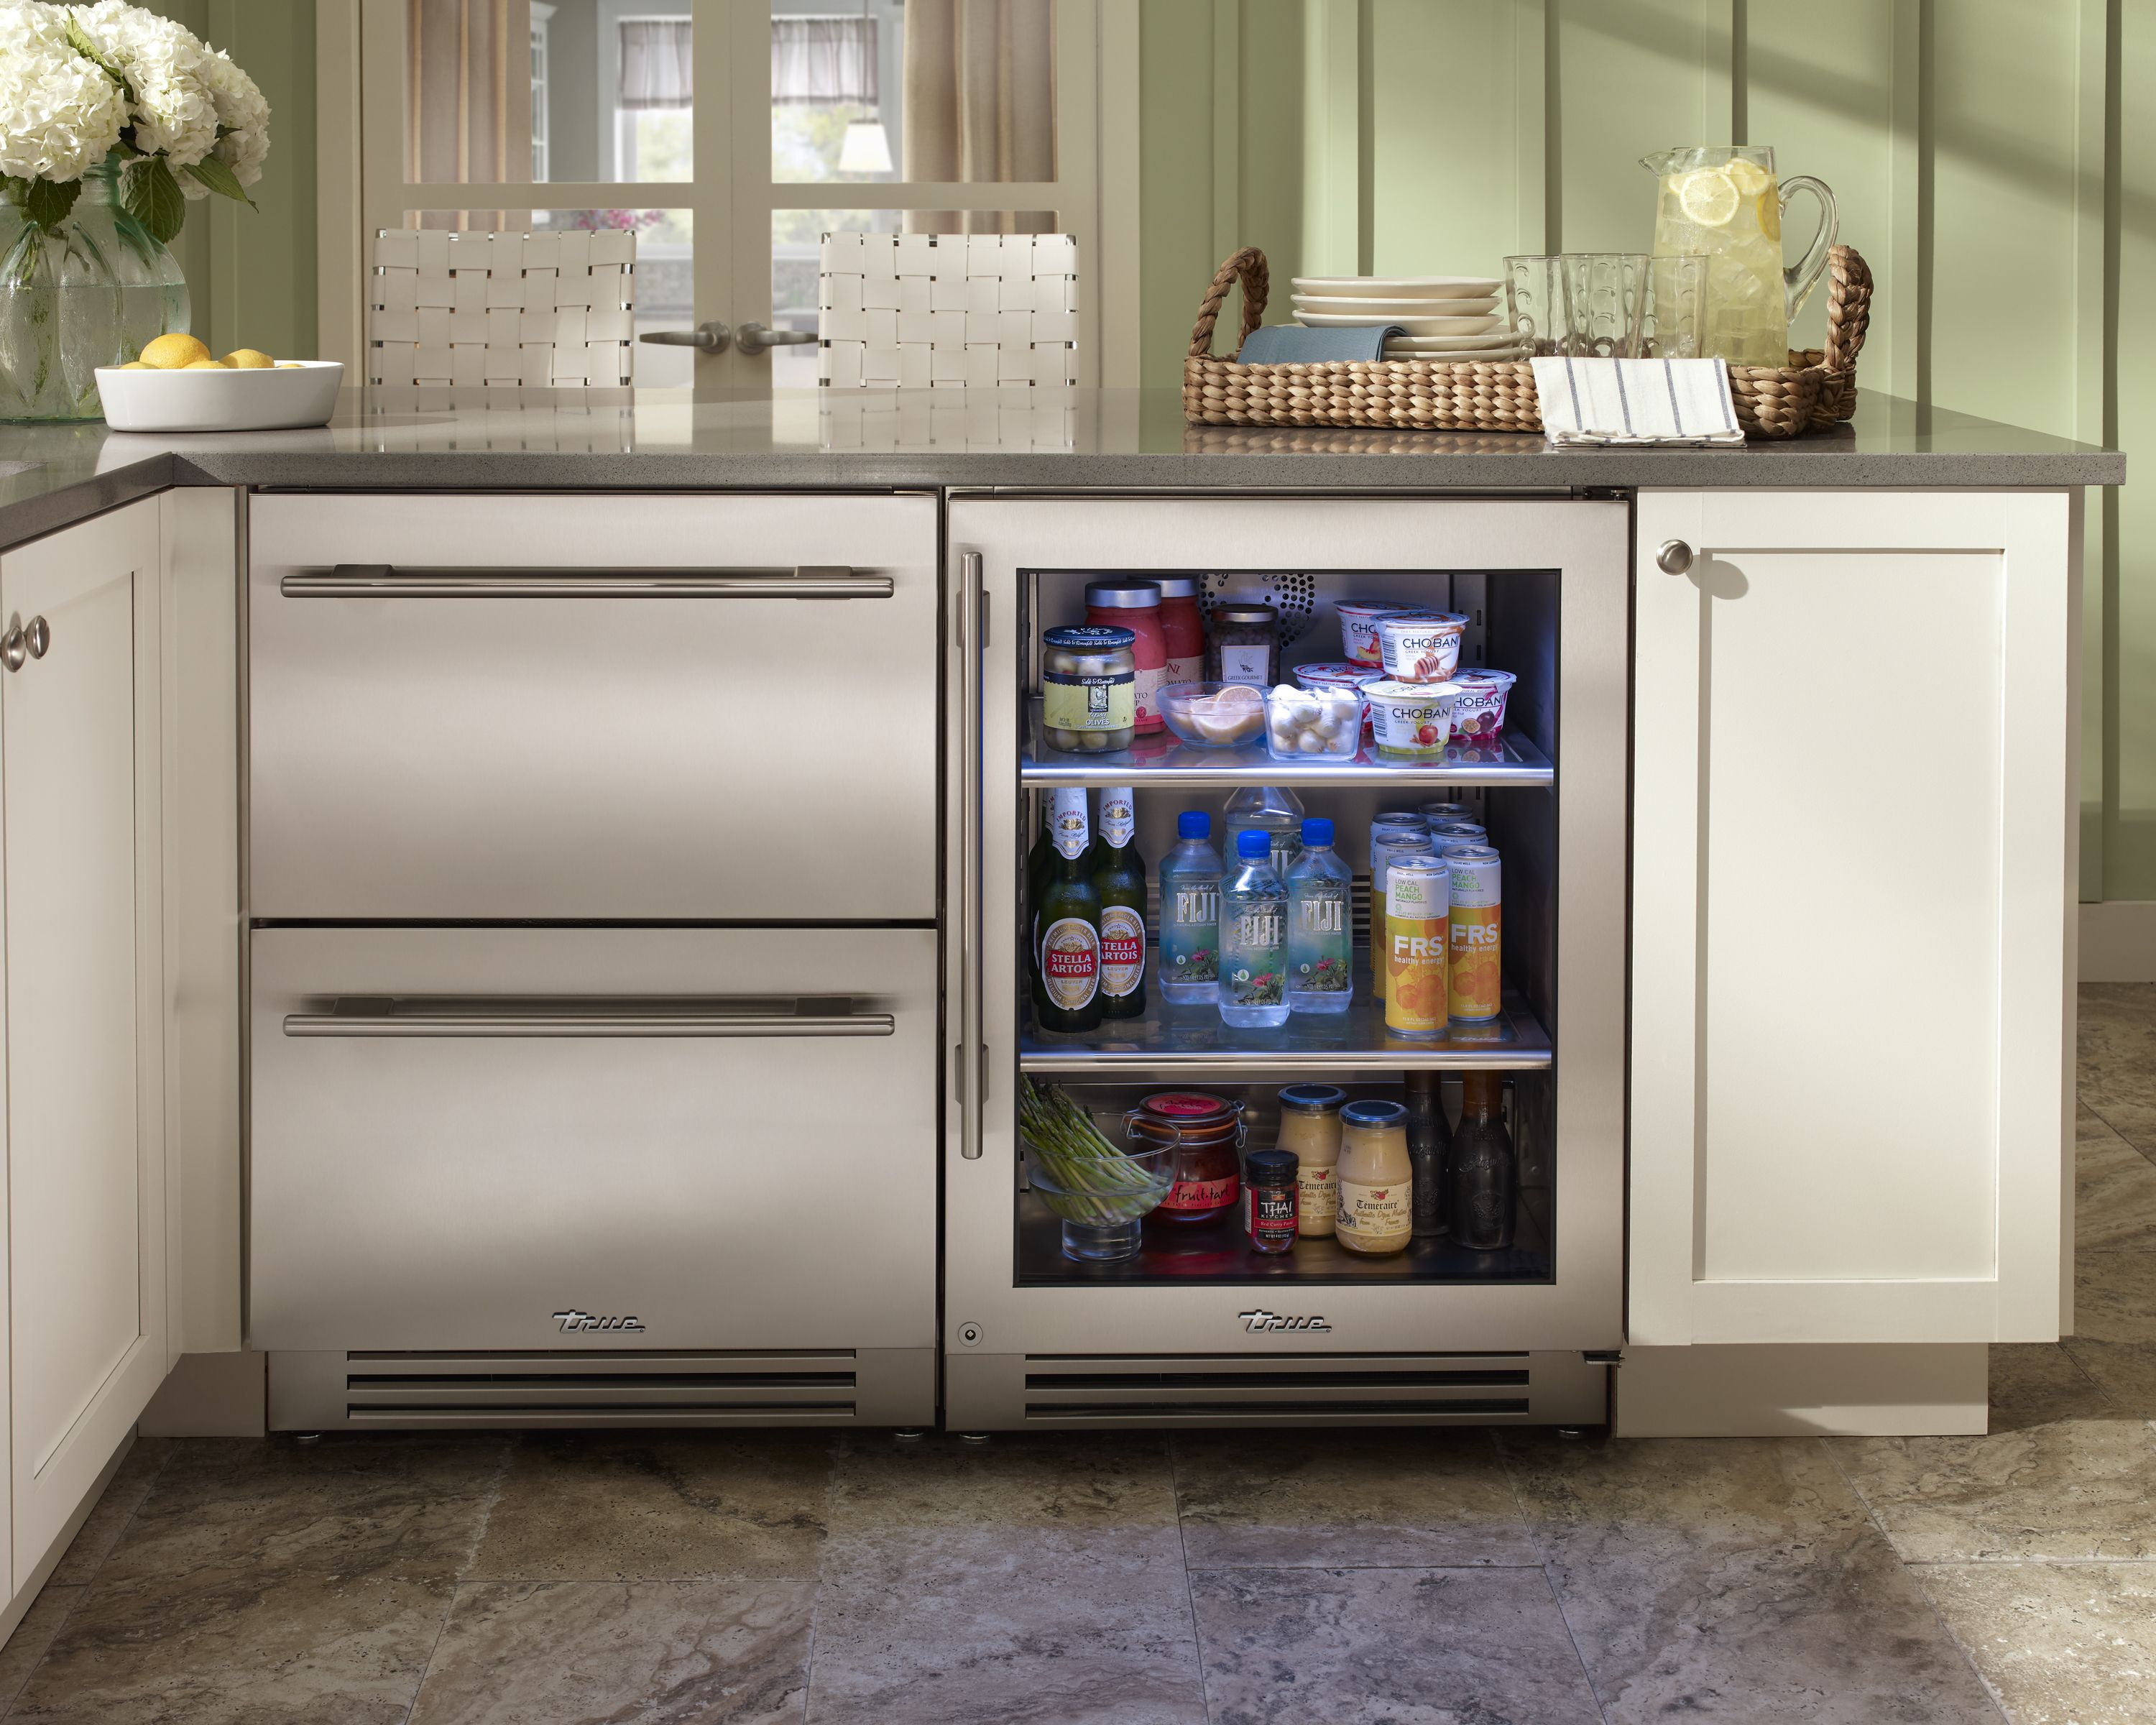 Rhode island kitchen with true residential 24 refrigerator drawers and 24 undercounter Drawers in kitchen design